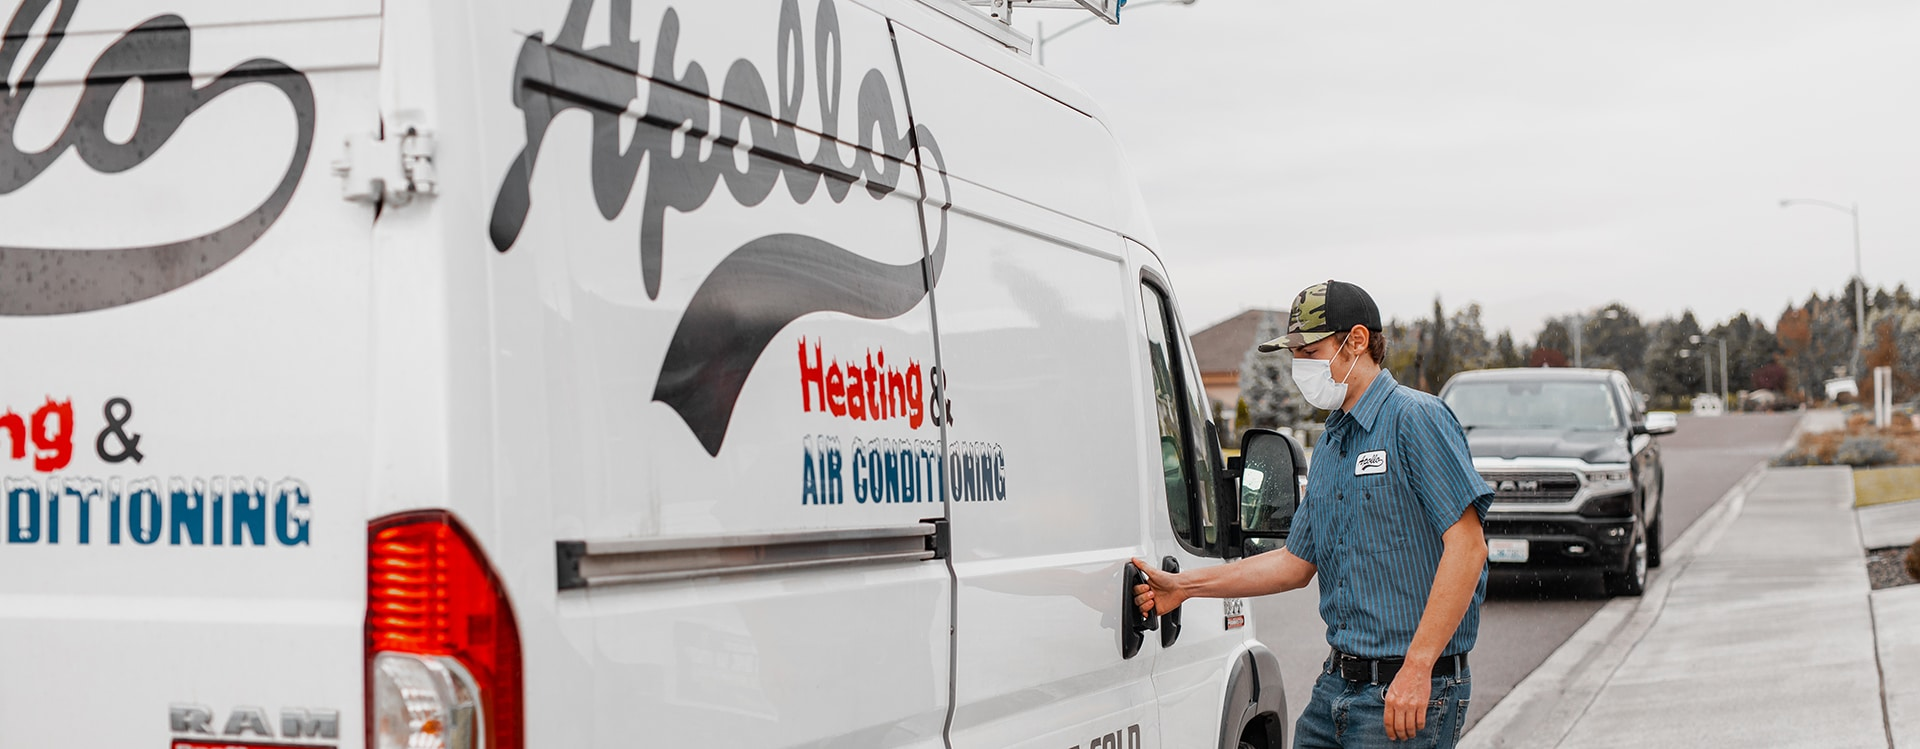 commercial hvac company apollo heating and air employee and van